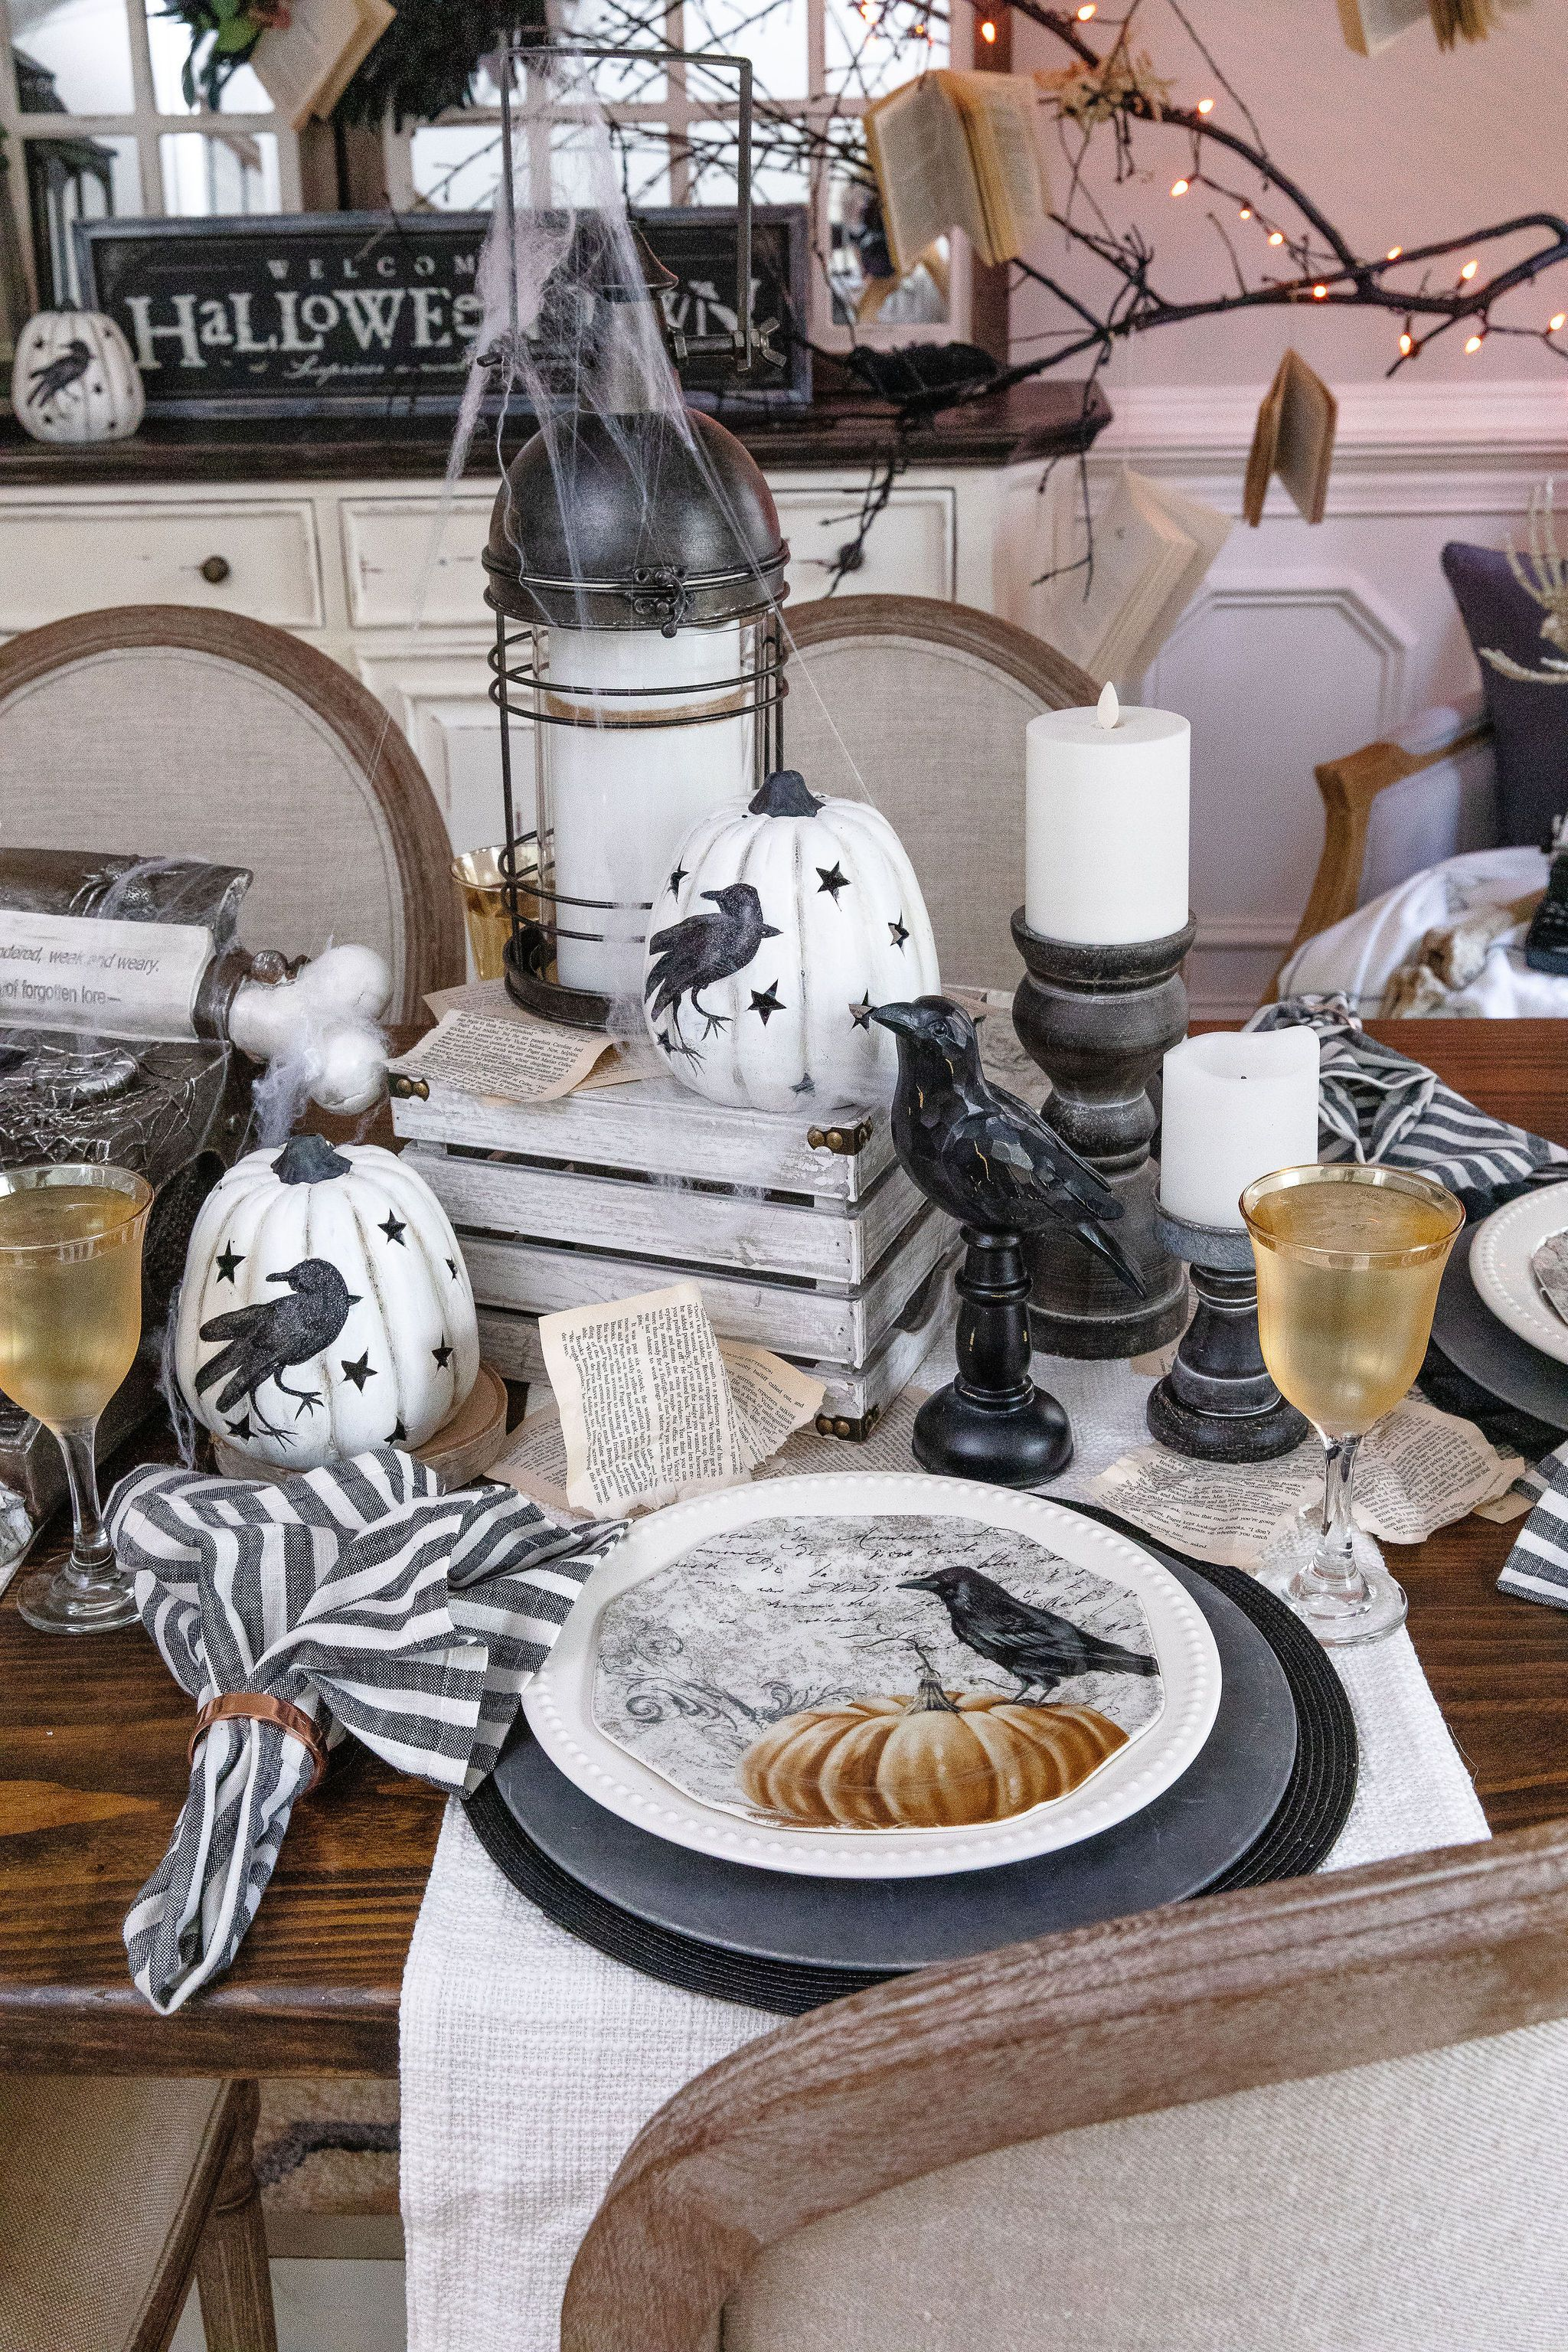 How a Simple Plate Inspired One Incredible, Edgar Allen Poe-Themed Room